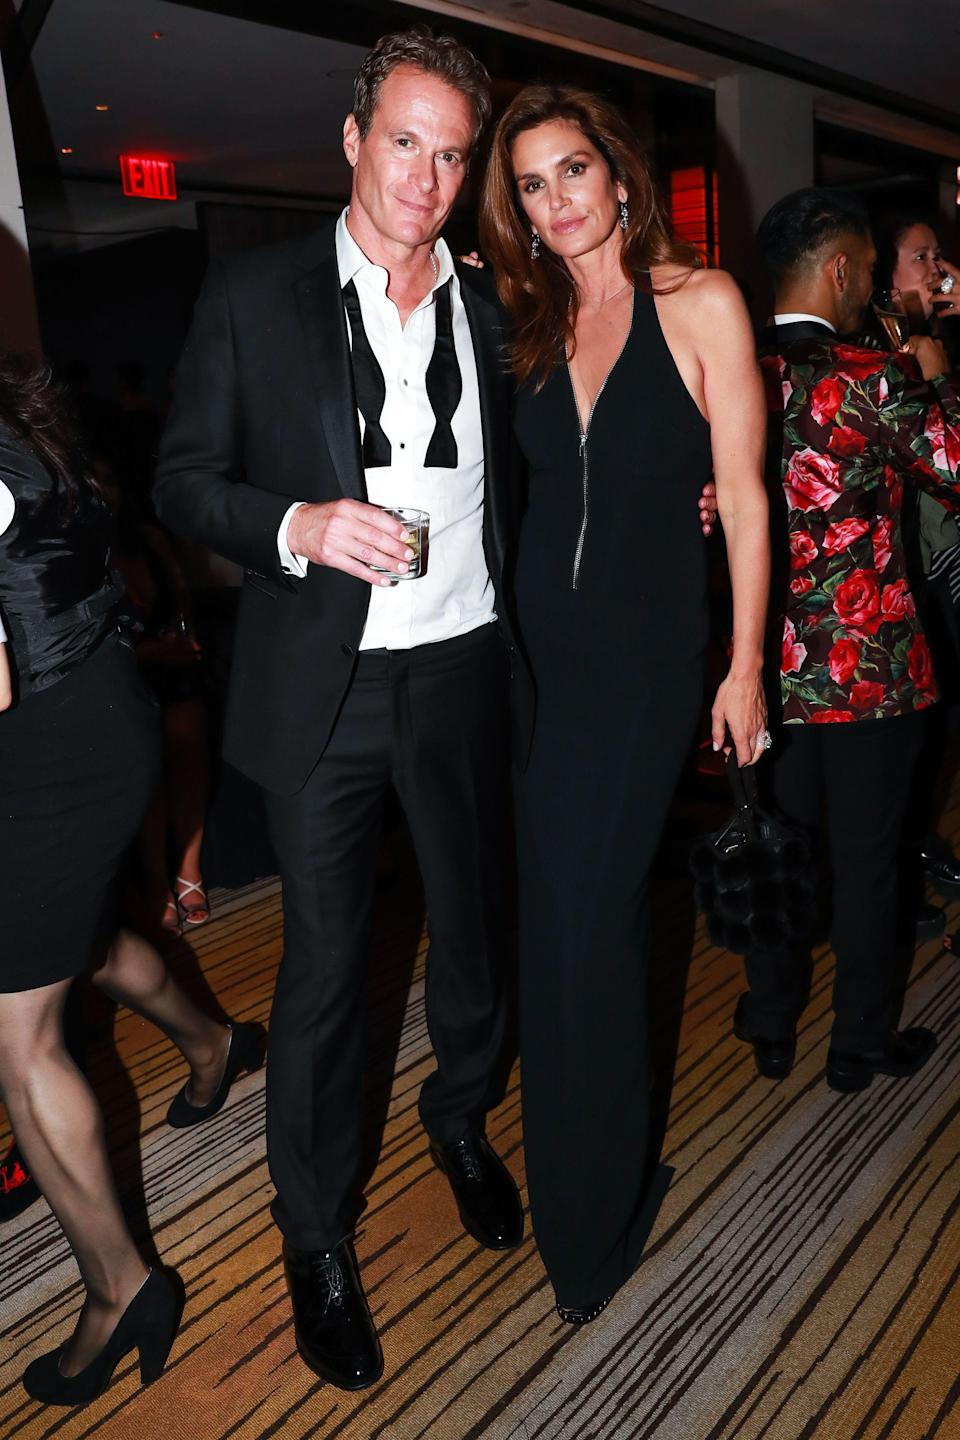 <p>Cindy Crawford and Rande Gerber coupled up at The Boom Boom Room. (Photo: Shutterstock) </p>